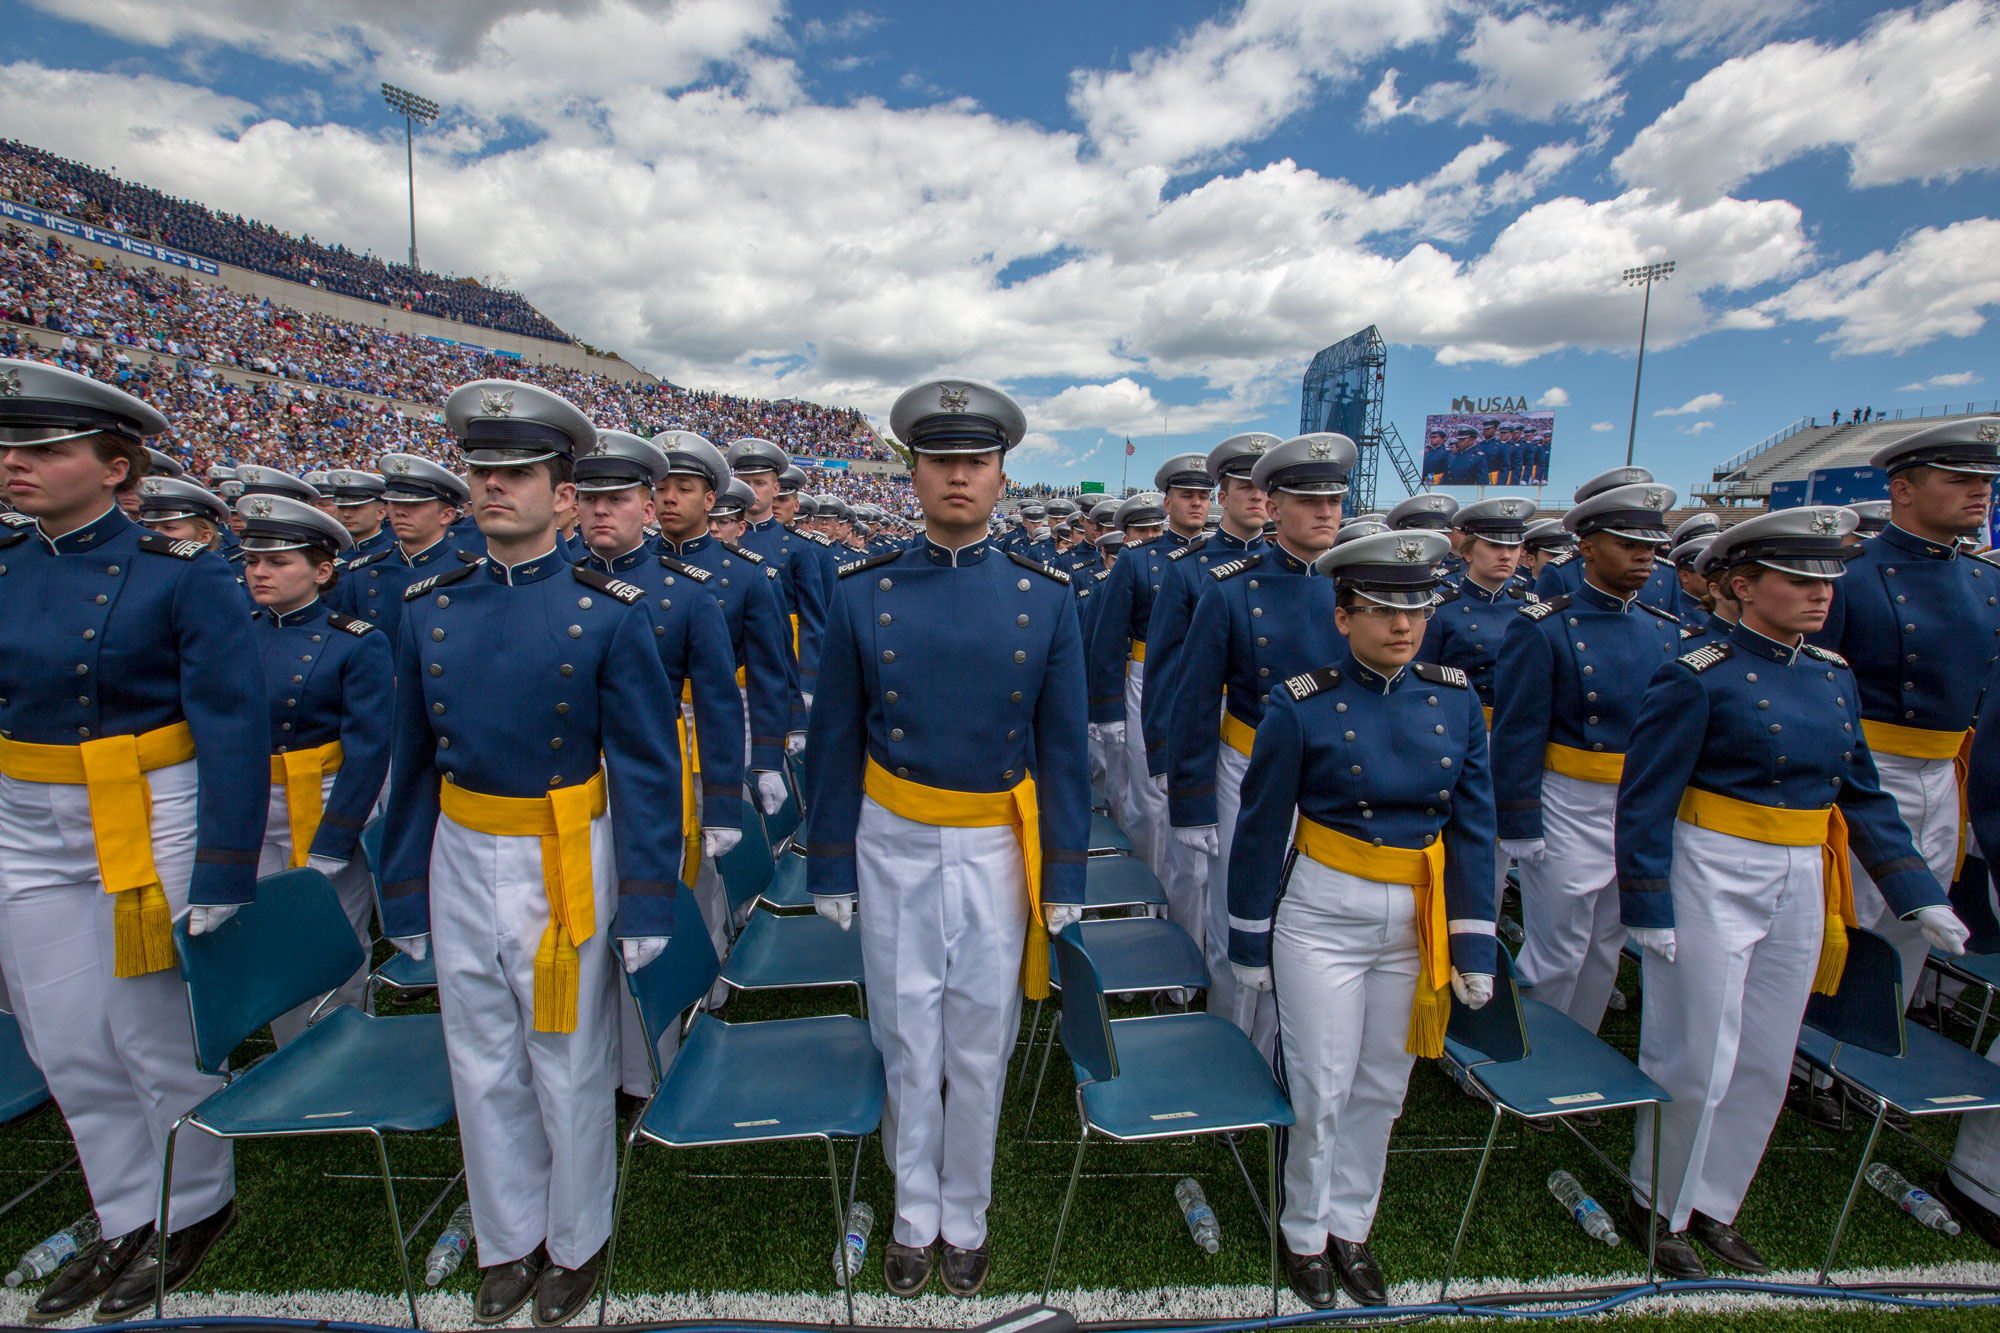 U.S. Air Force Academy graduates stand at their seats at their commencement ceremony on Thursday, May 30.